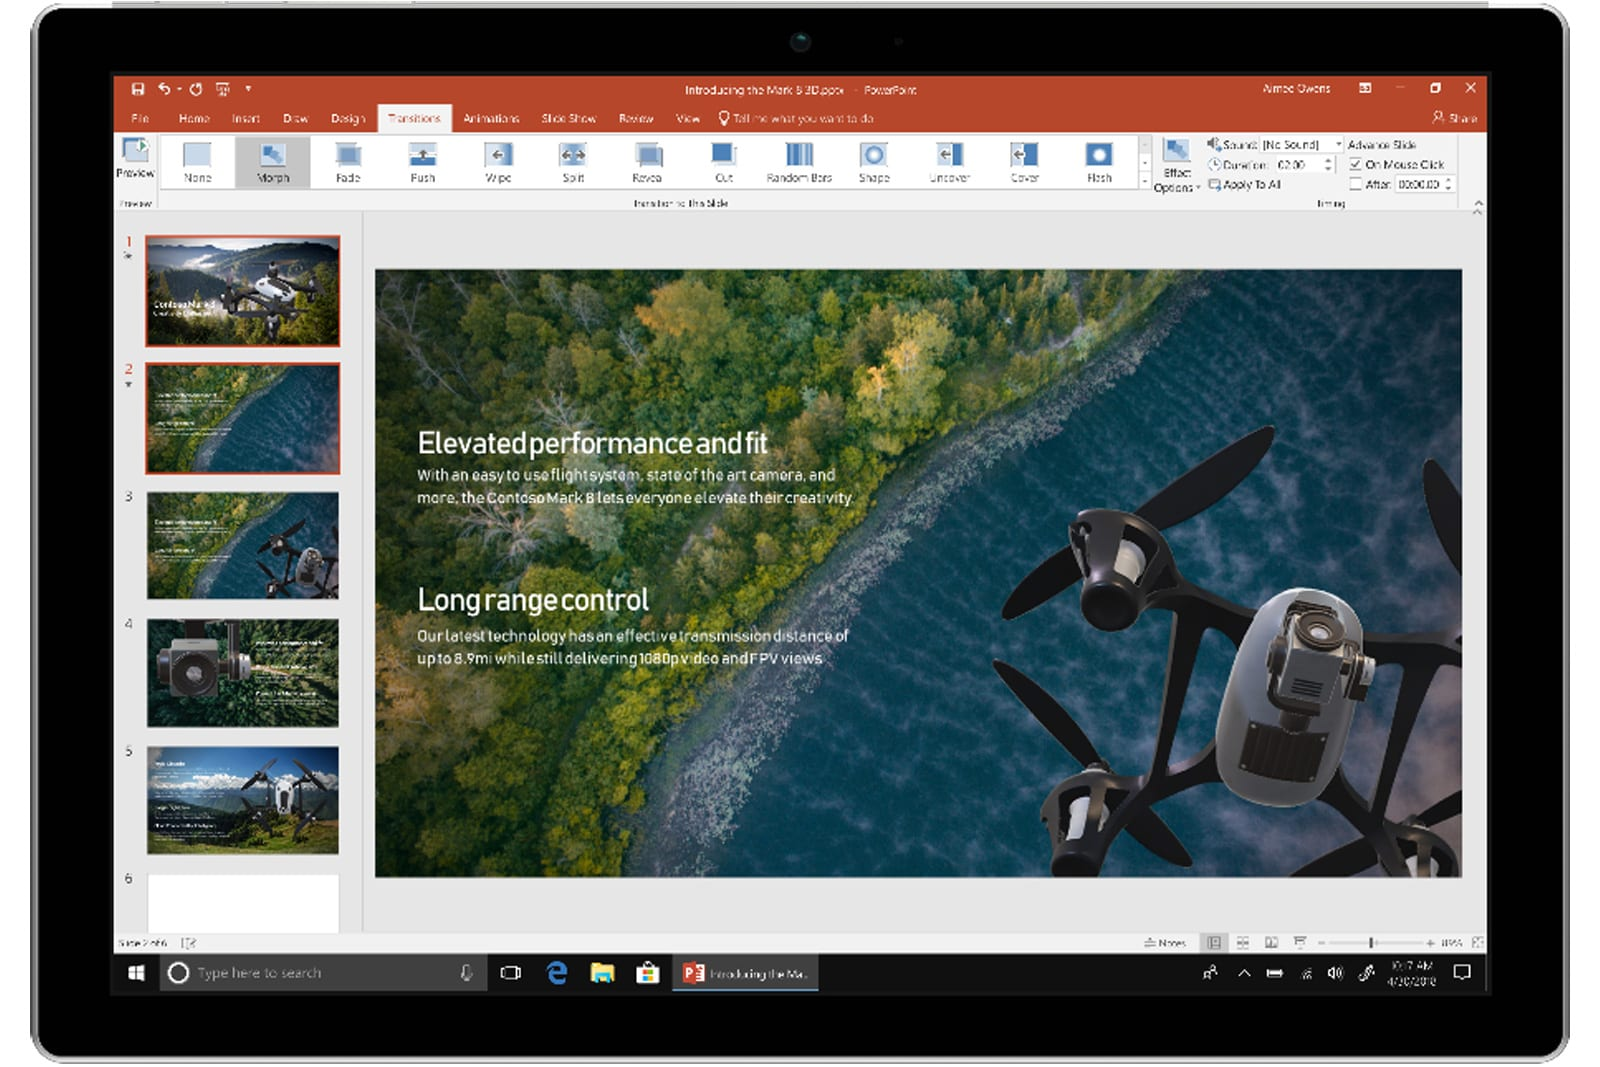 Microsoft releases Office 2019 for Mac and Windows